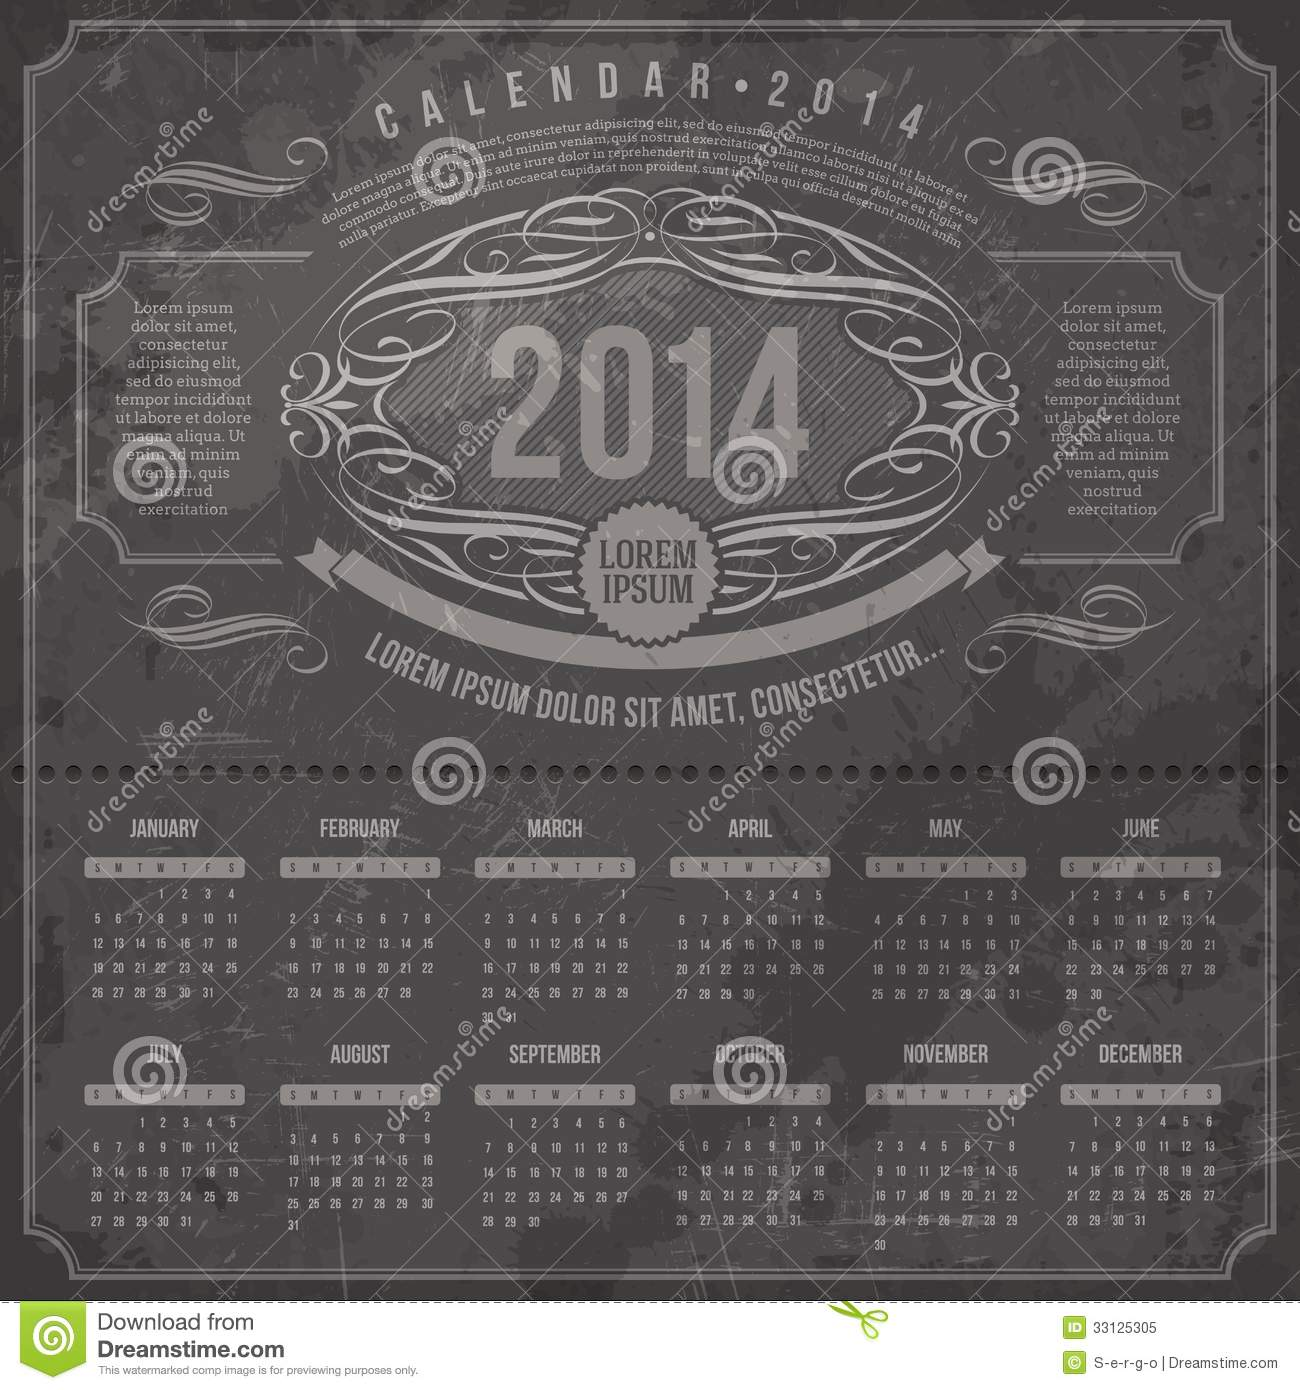 Vintage Calendar Template : Ornate vintage calendar of royalty free stock photo